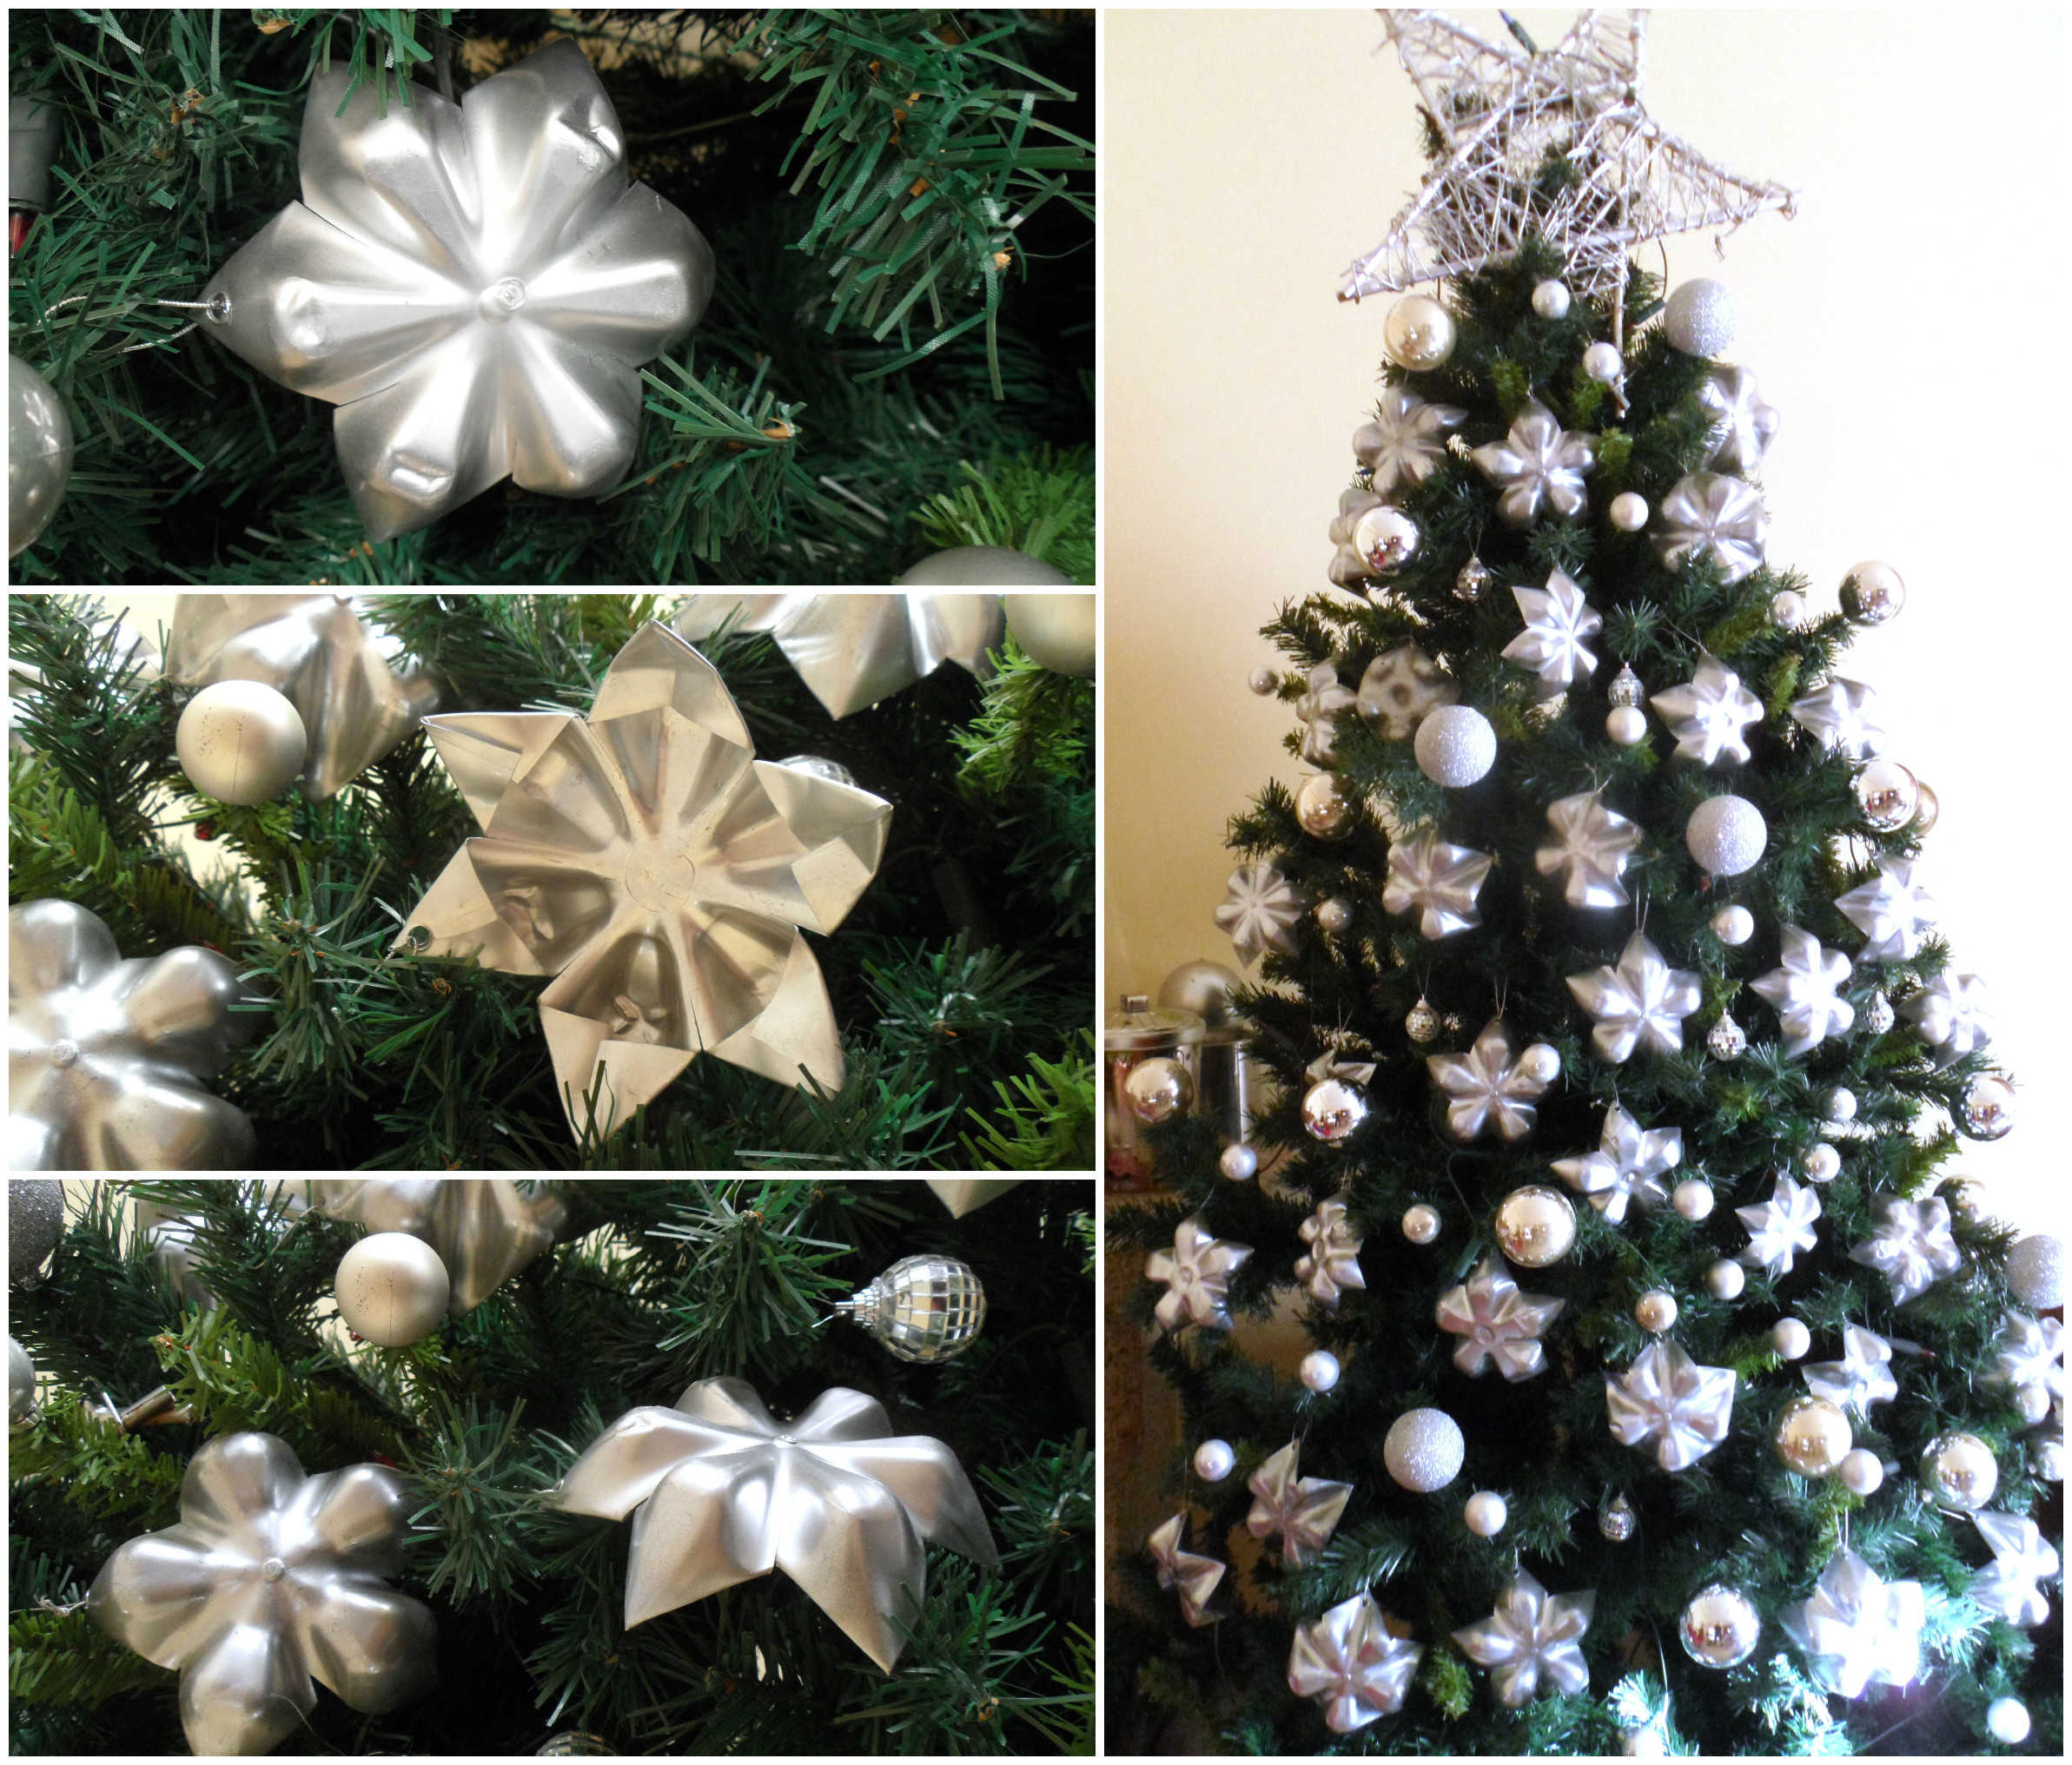 Christmas Wall Decor Recycled : Upcycled plastic bottle bottoms into stars for christmas